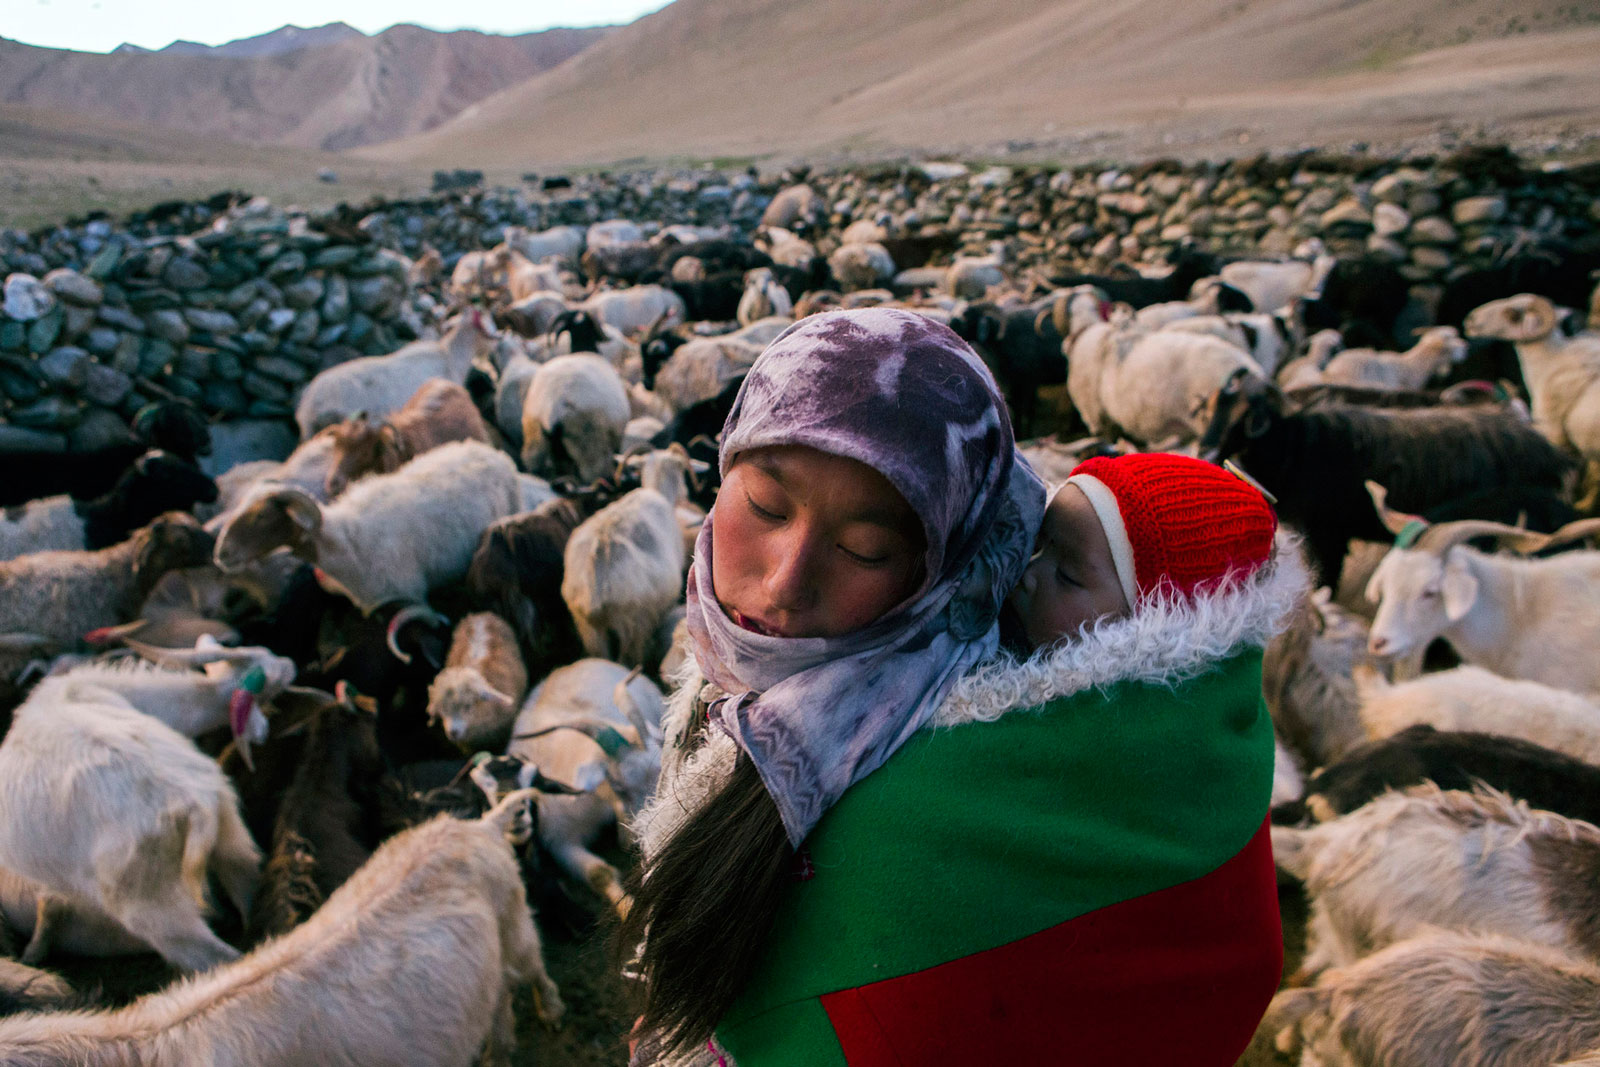 A nomadic woman carries a child on her back through a herd of pashmina goats at their settlement in the valley of Kharnak, Jammu and Kashmir, India